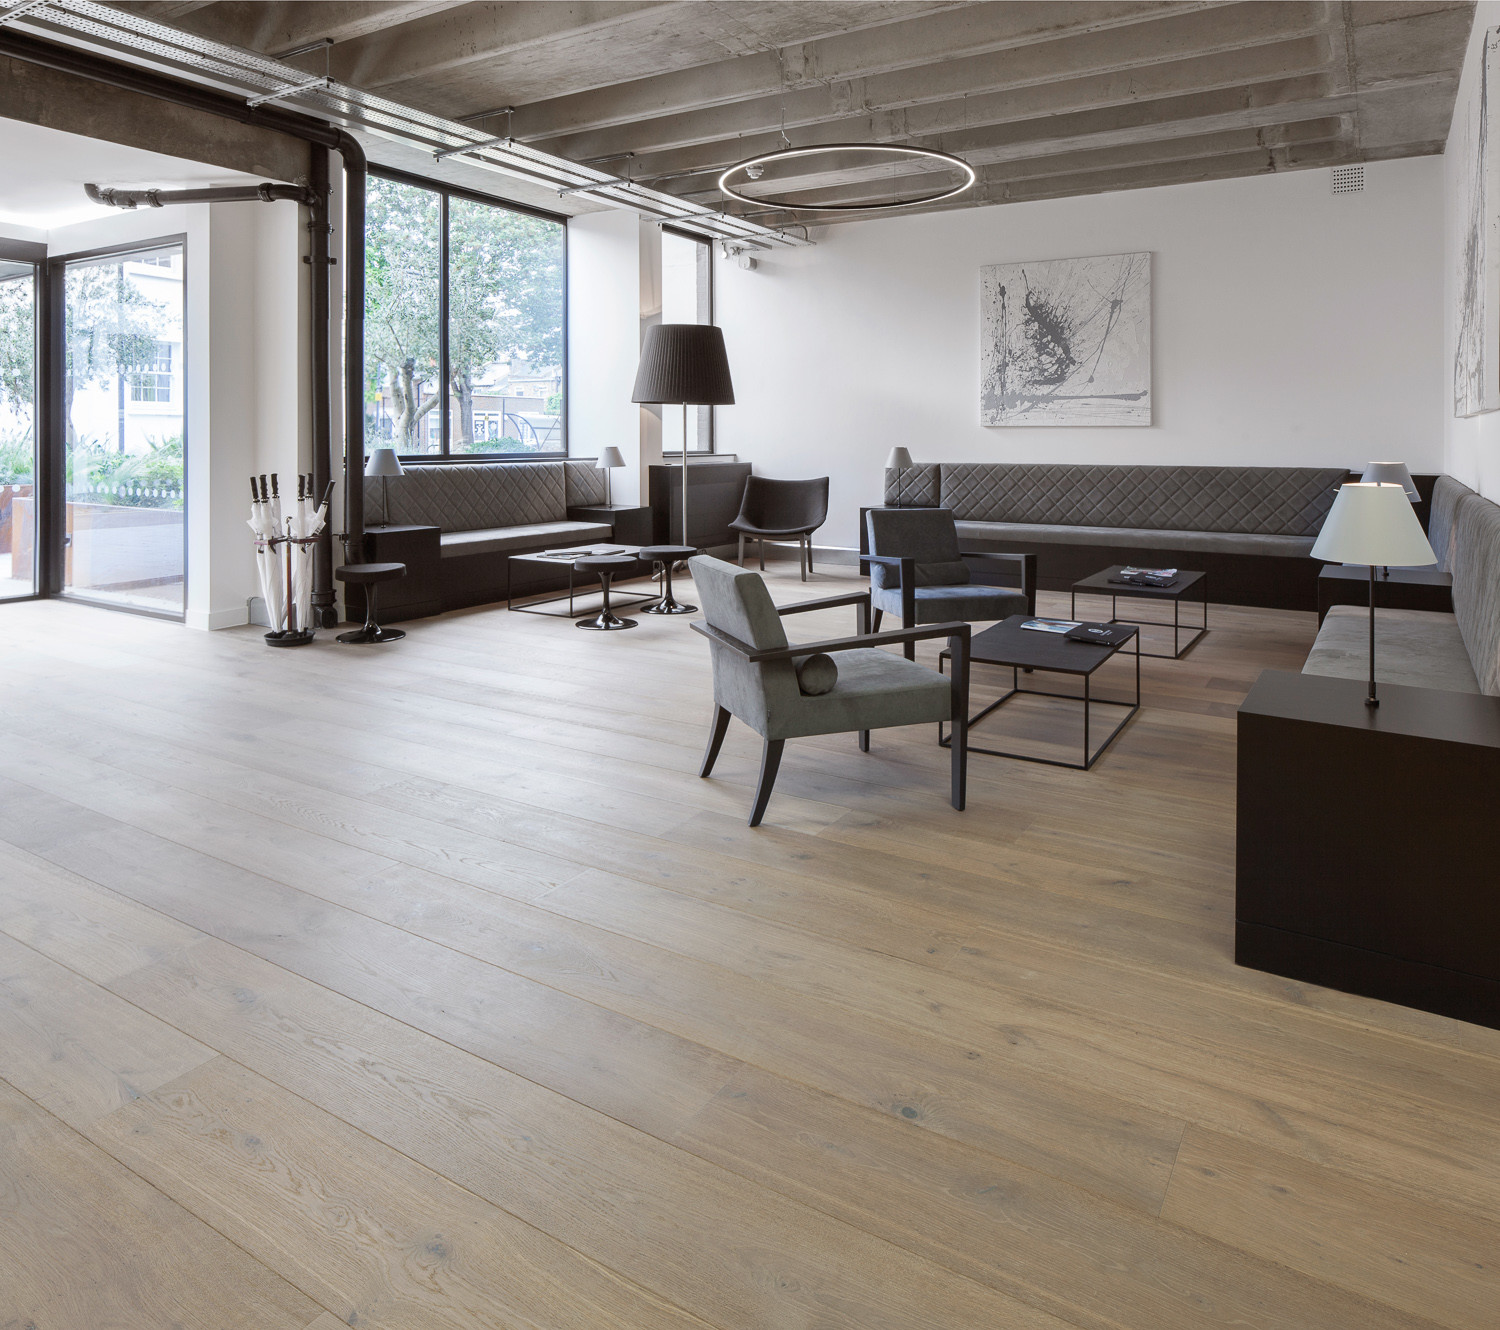 great lakes hickory hardwood flooring of the new reclaimed flooring company throughout the report indicated that 82 of workers who were employed in places with eight or more wood surfaces had higher personal productivity mood concentration